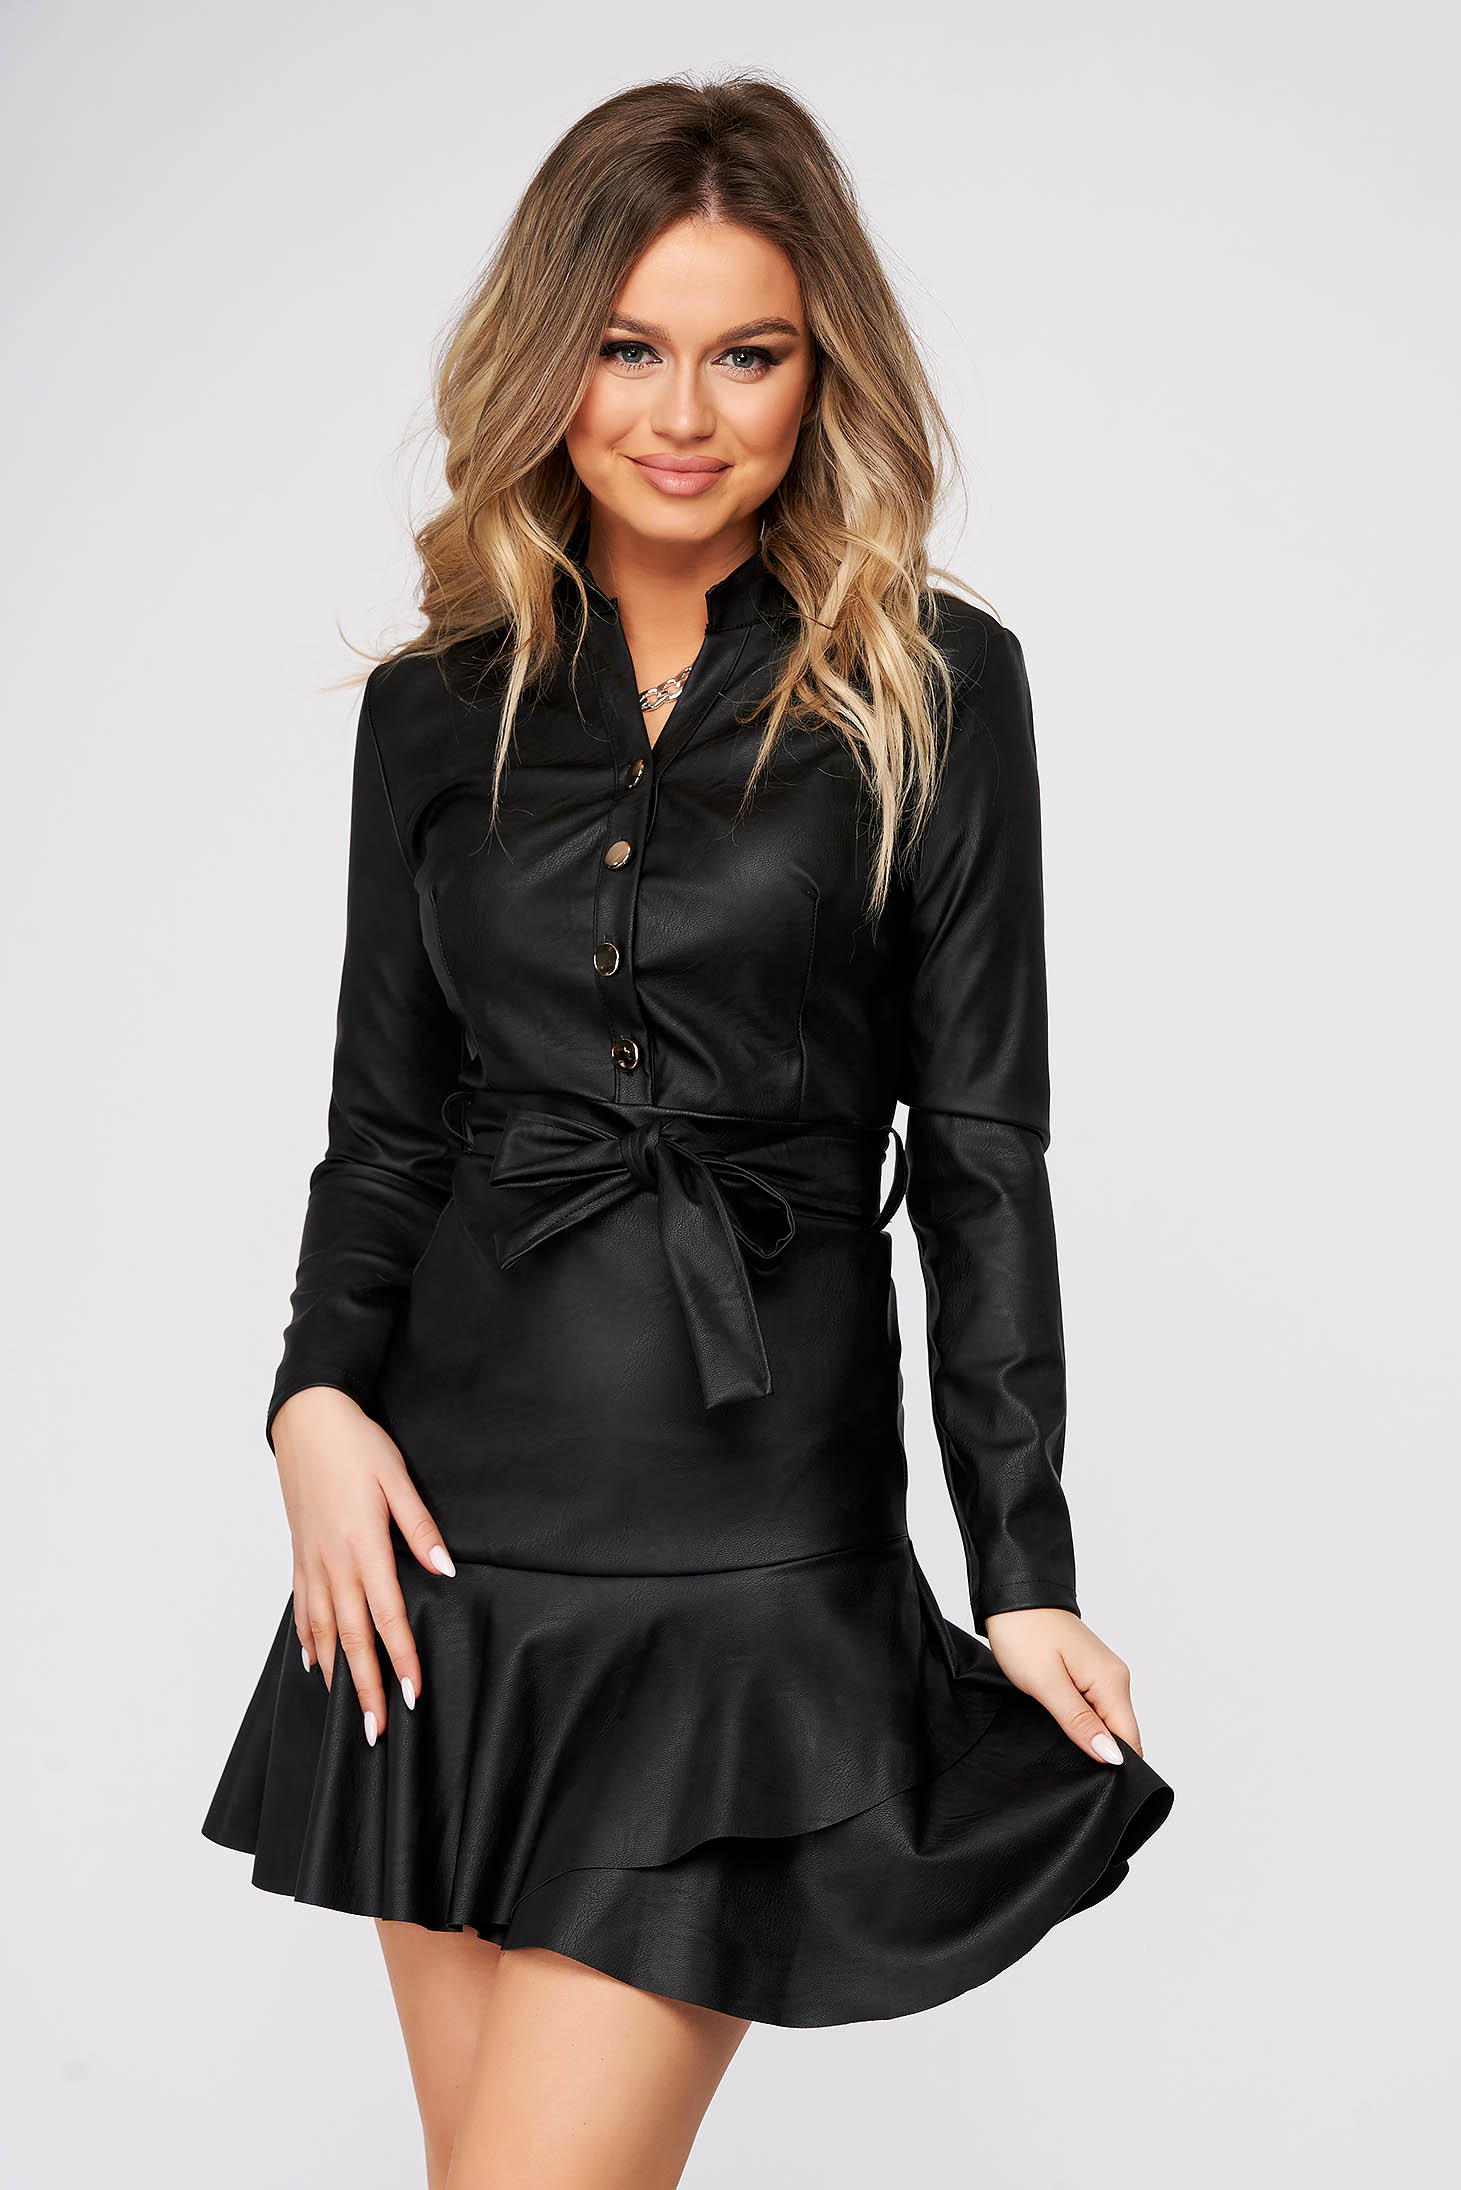 Black dress daily cloche faux leather accessorized with tied waistband with ruffles at the buttom of the dress